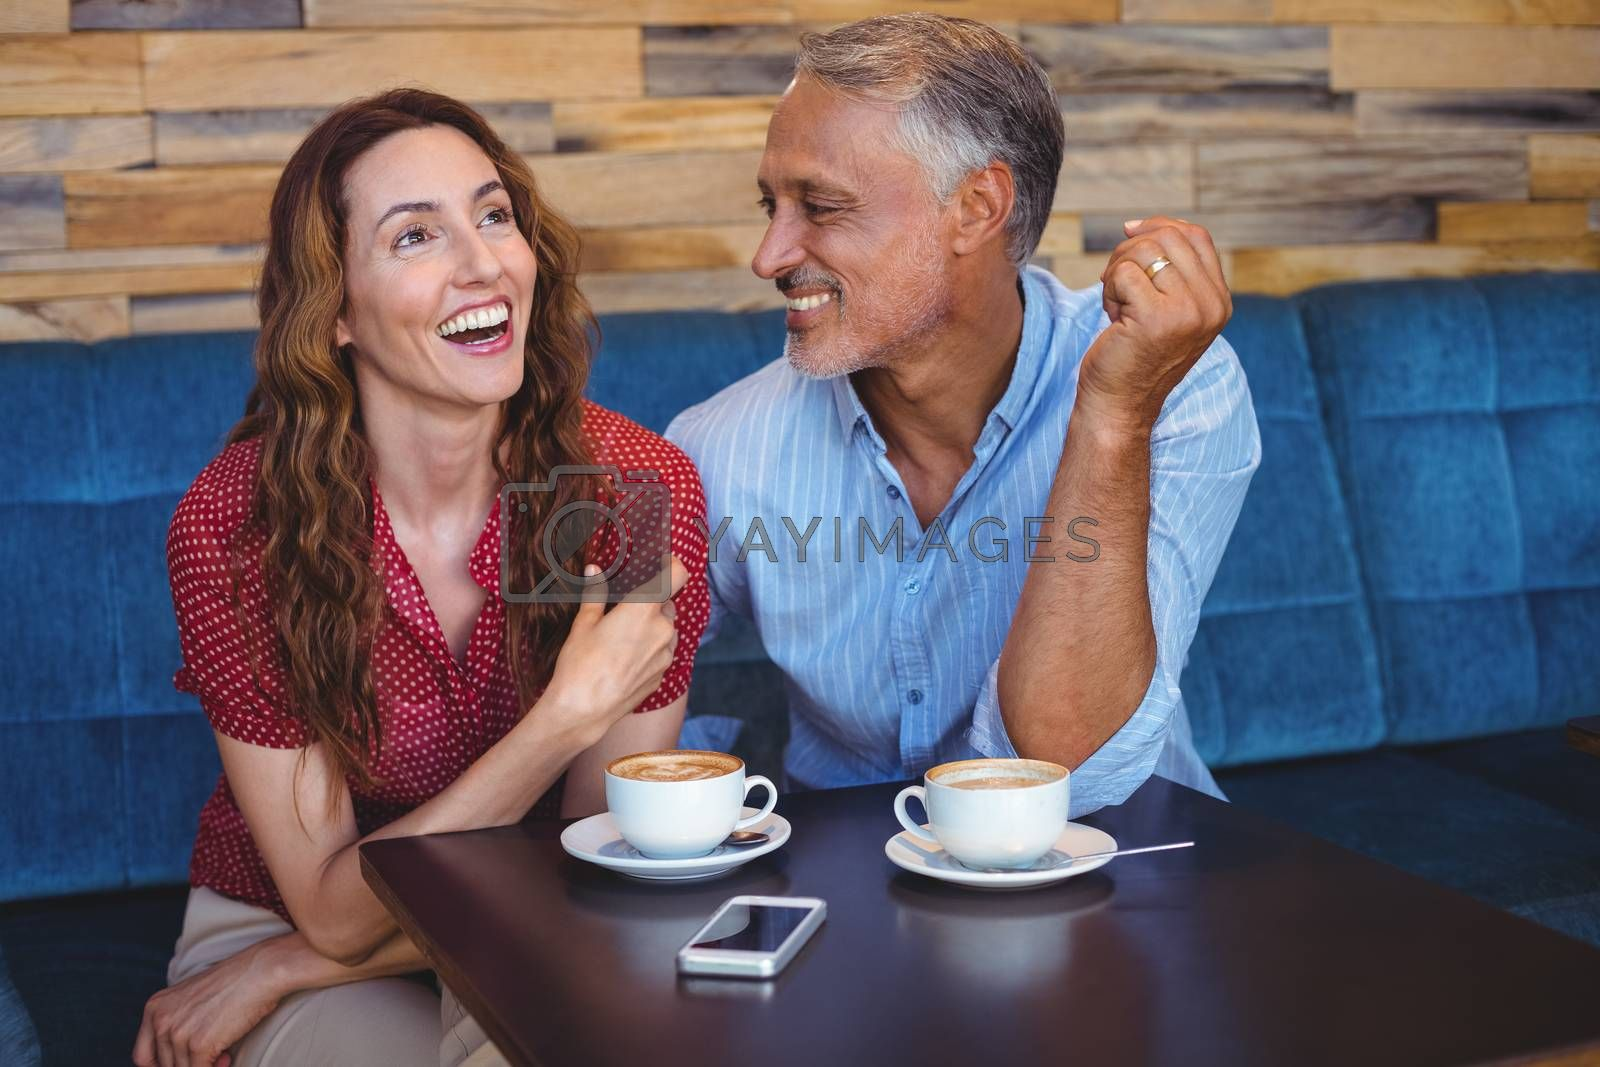 Royalty free image of Cute couple laughing  by Wavebreakmedia